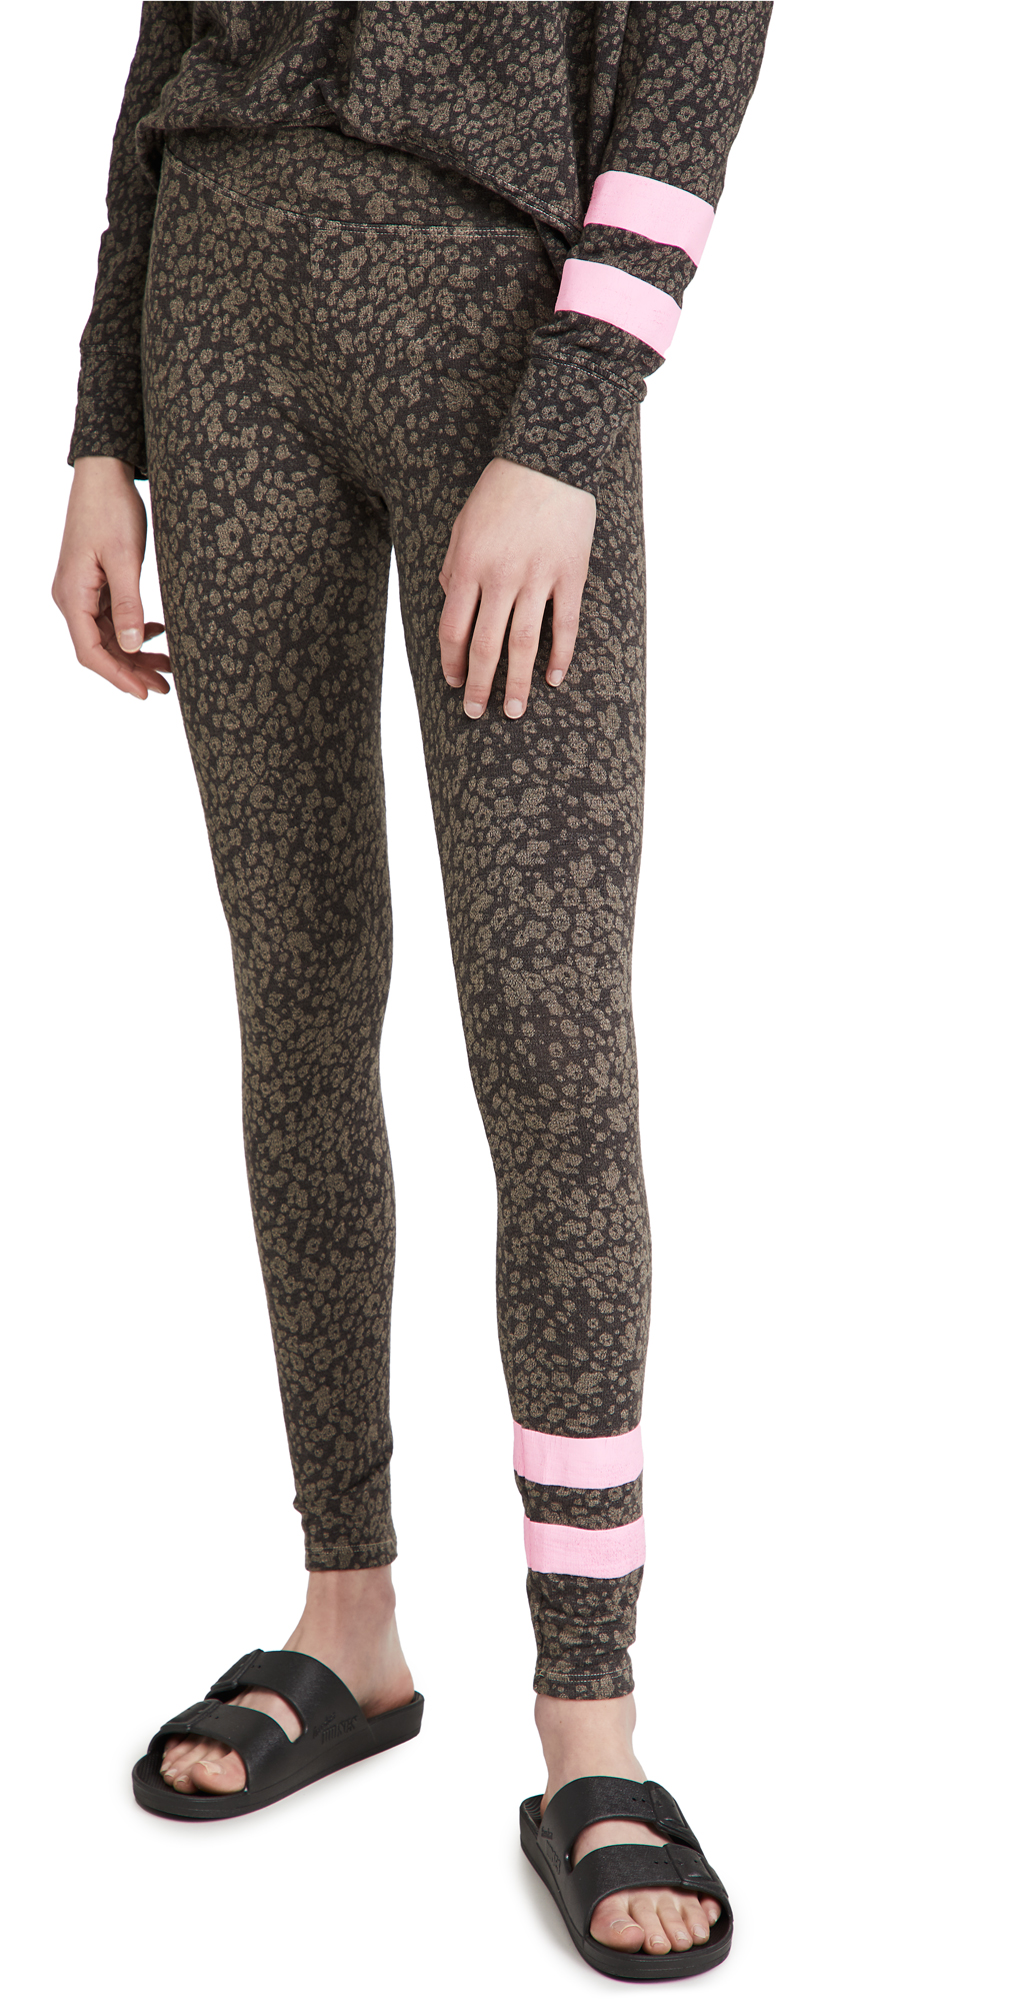 SUNDRY Stripe Floral Yoga Pants